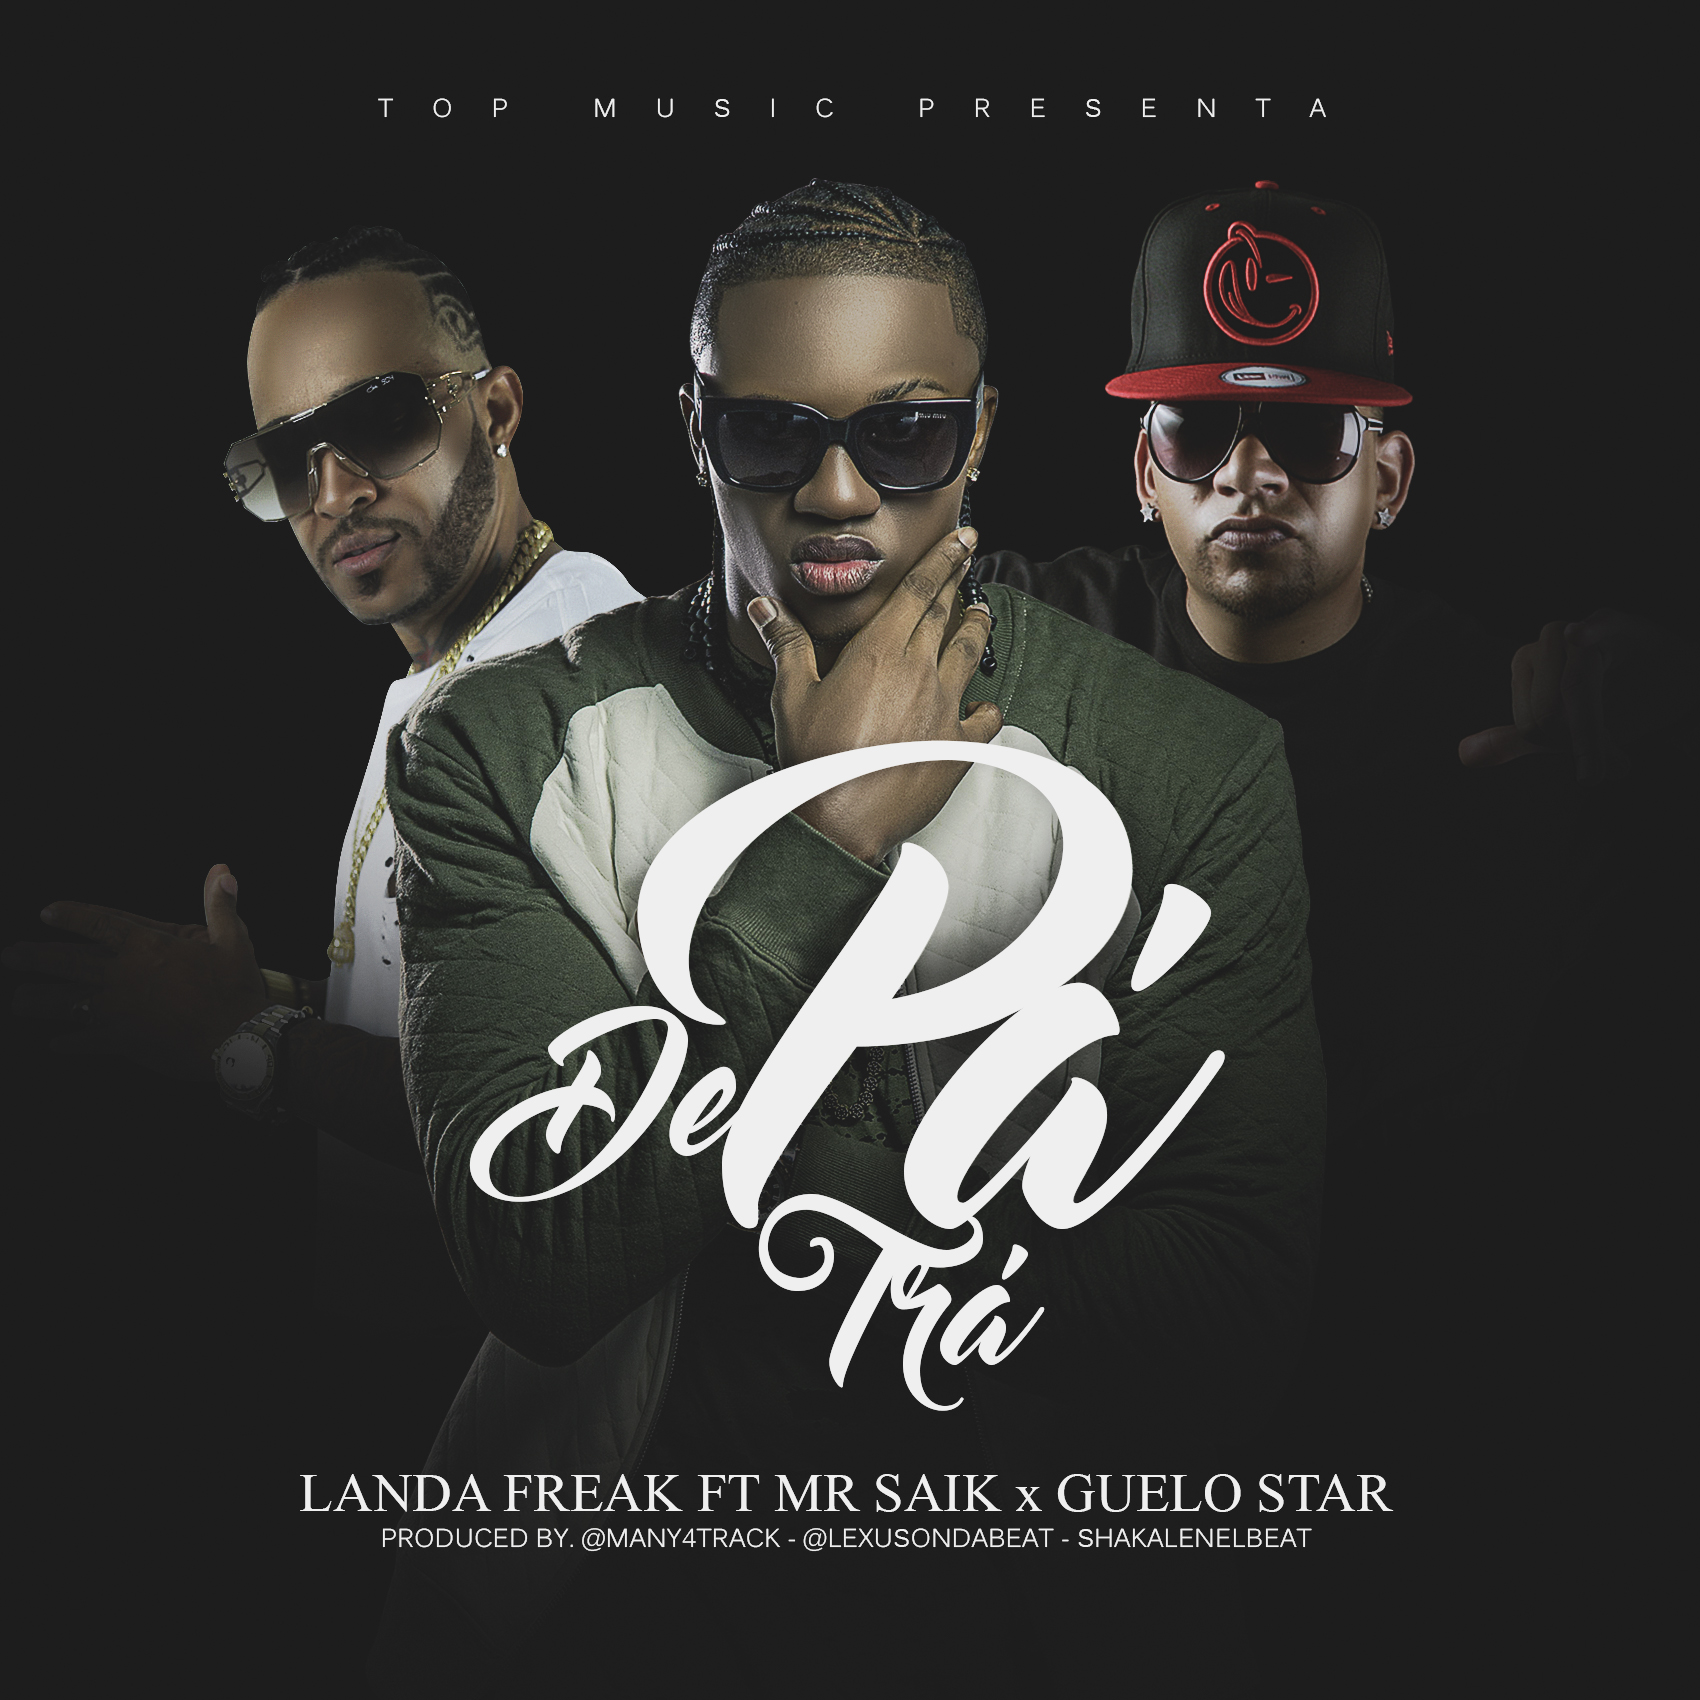 landa freak ft mr saik Guelo Star de pa tras - Landa Freak Ft. Mr. Saik, Guelo Star - De Pa' Tra (Estreno 22 de Julio)